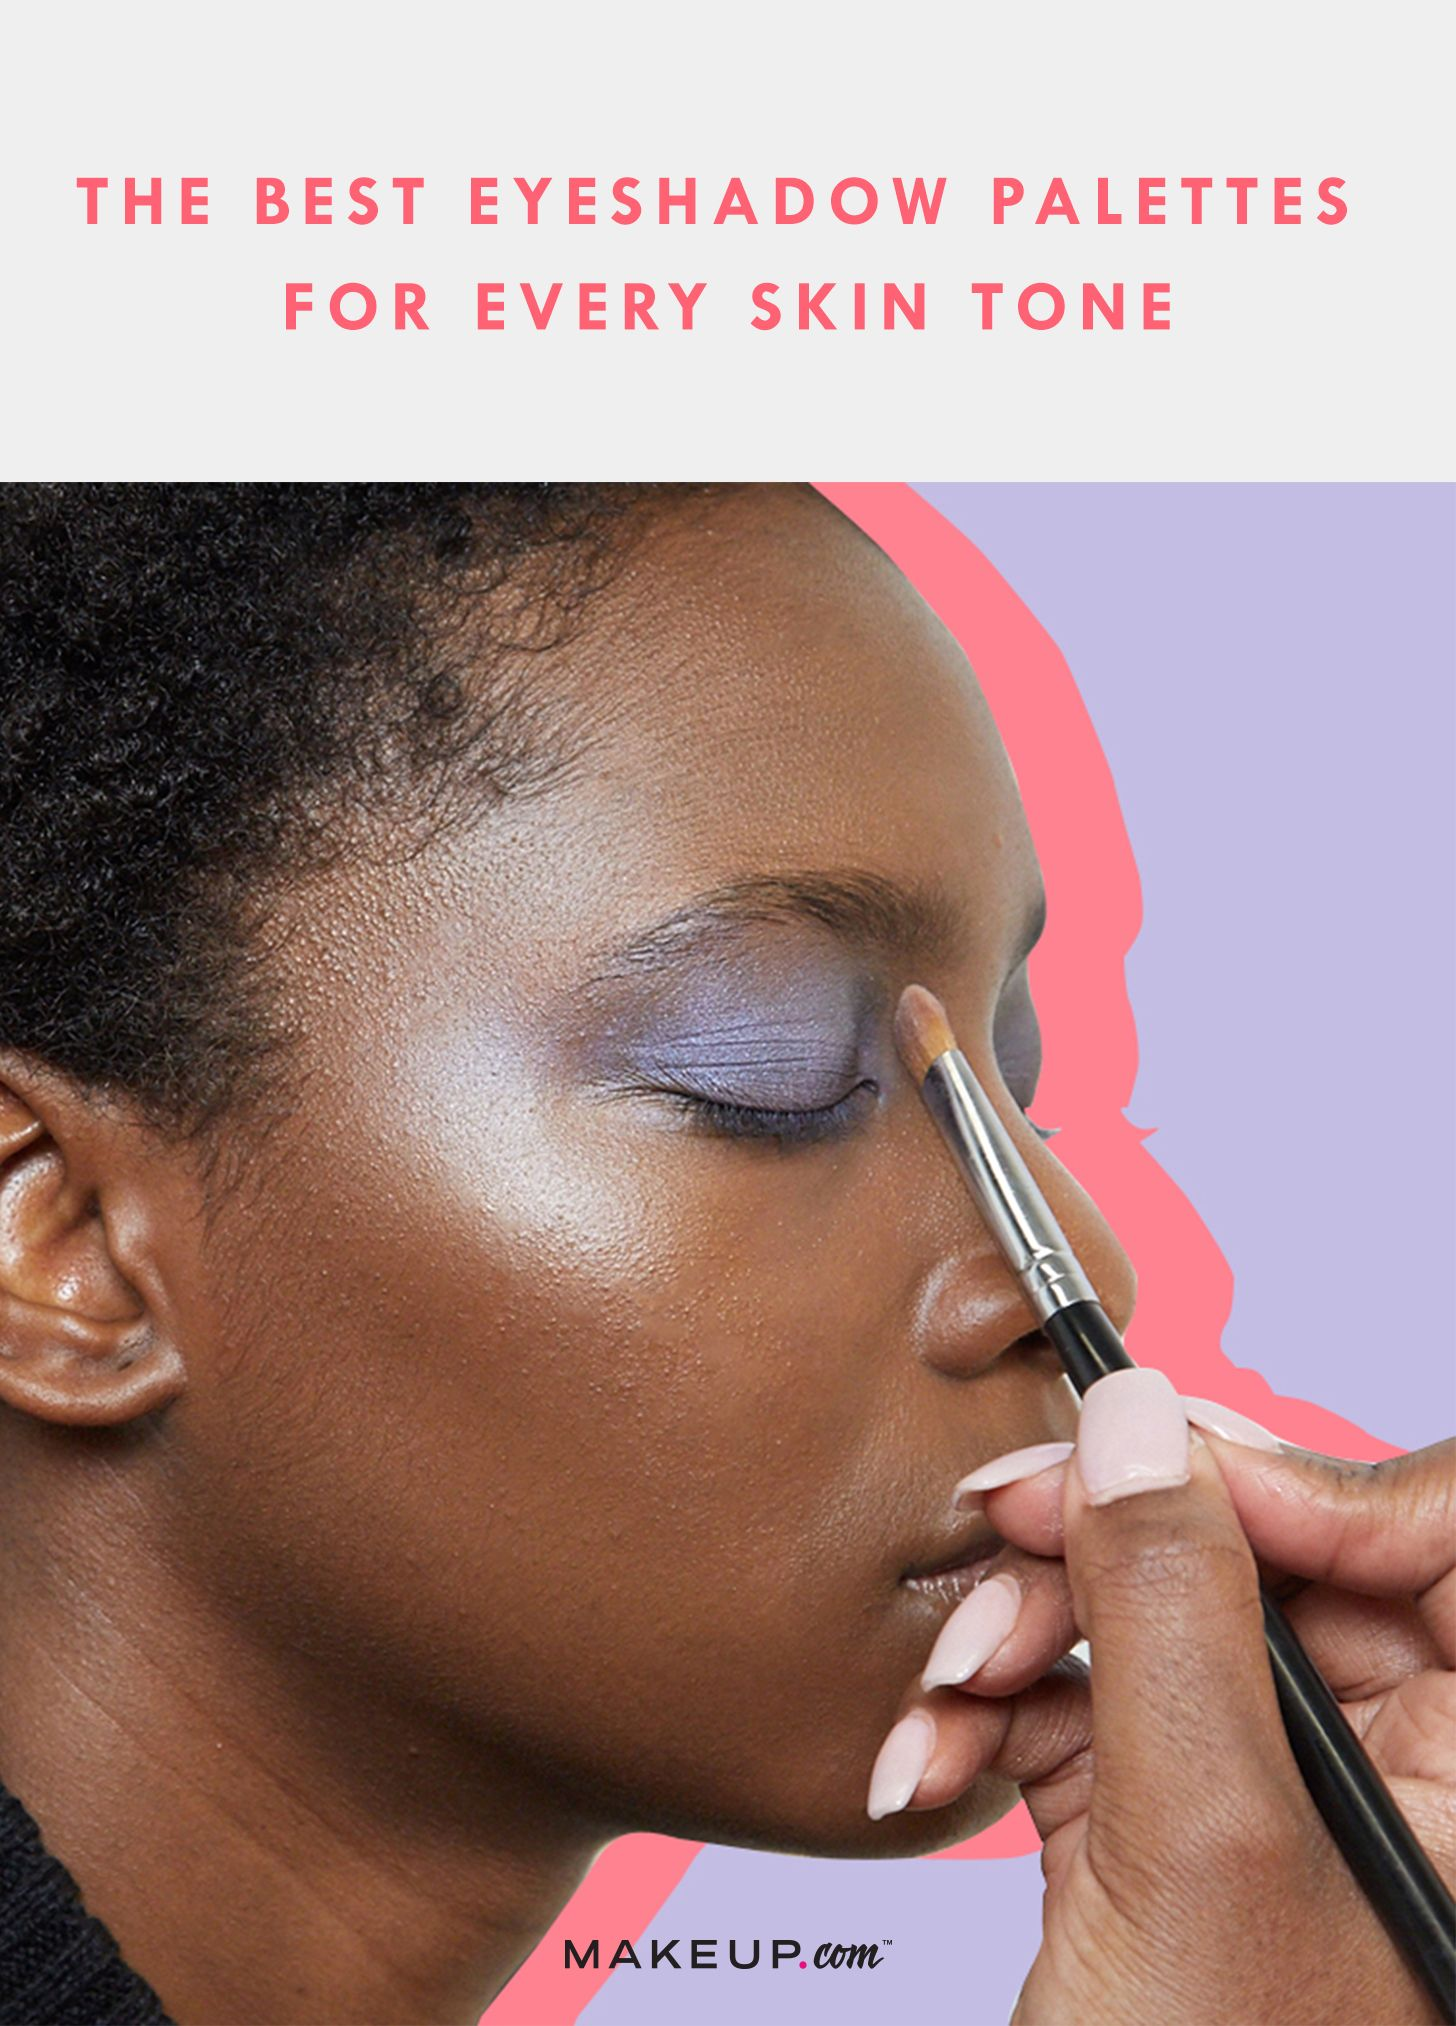 The Best Eye Shadow Palettes for Every Skin Tone Skin